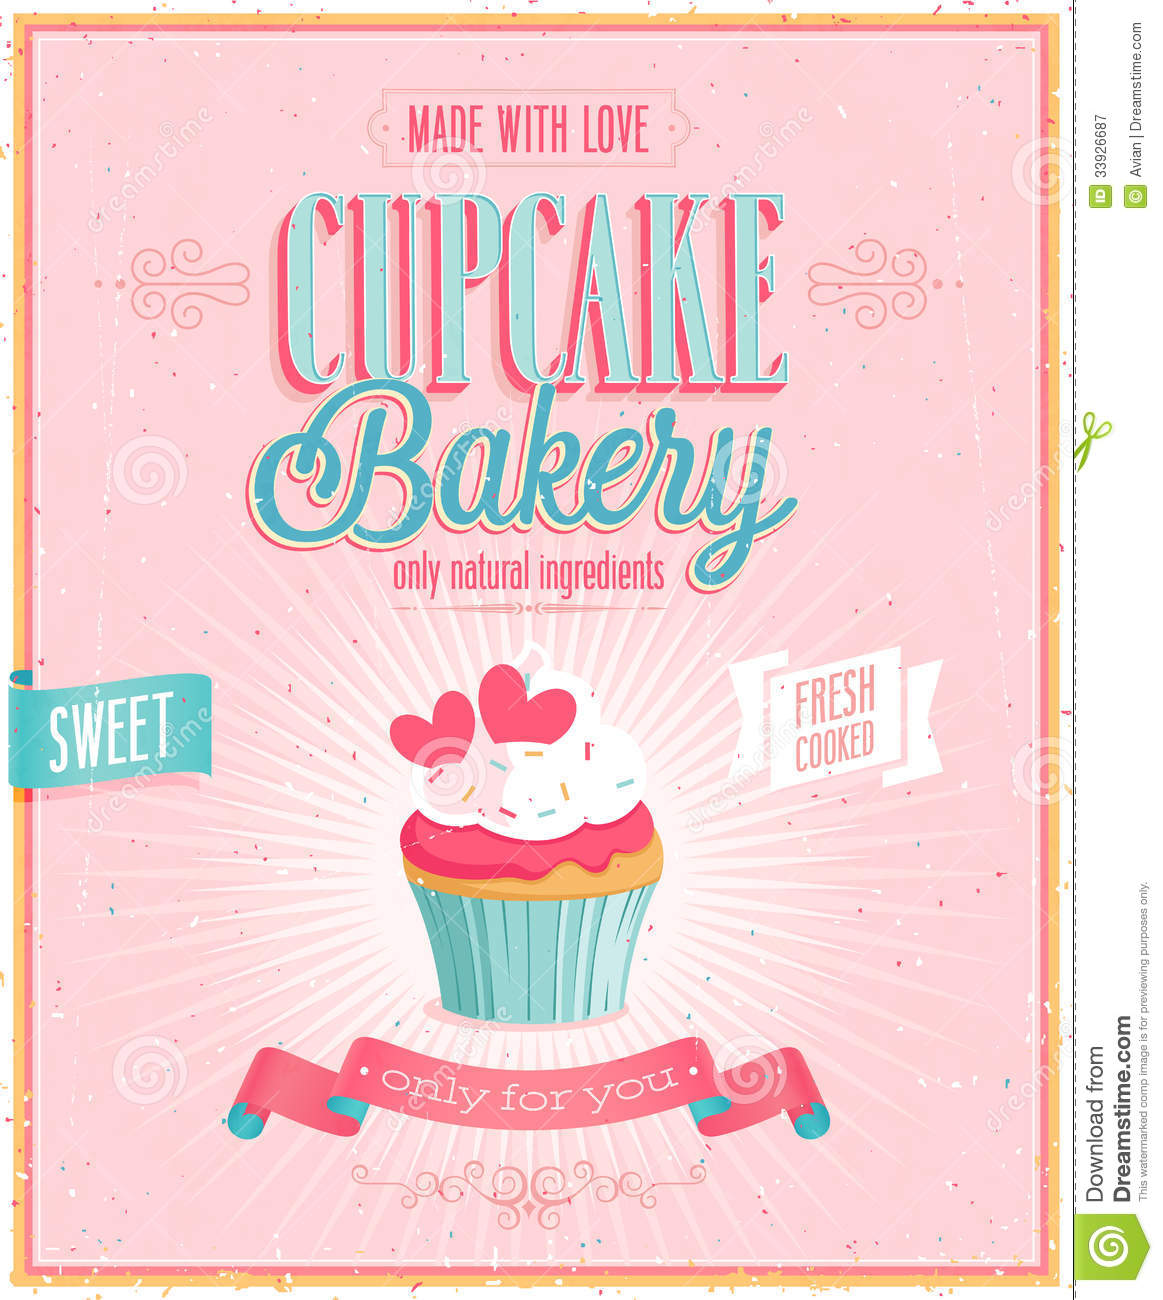 Vintage Cupcake Poster Royalty Free Stock Photography